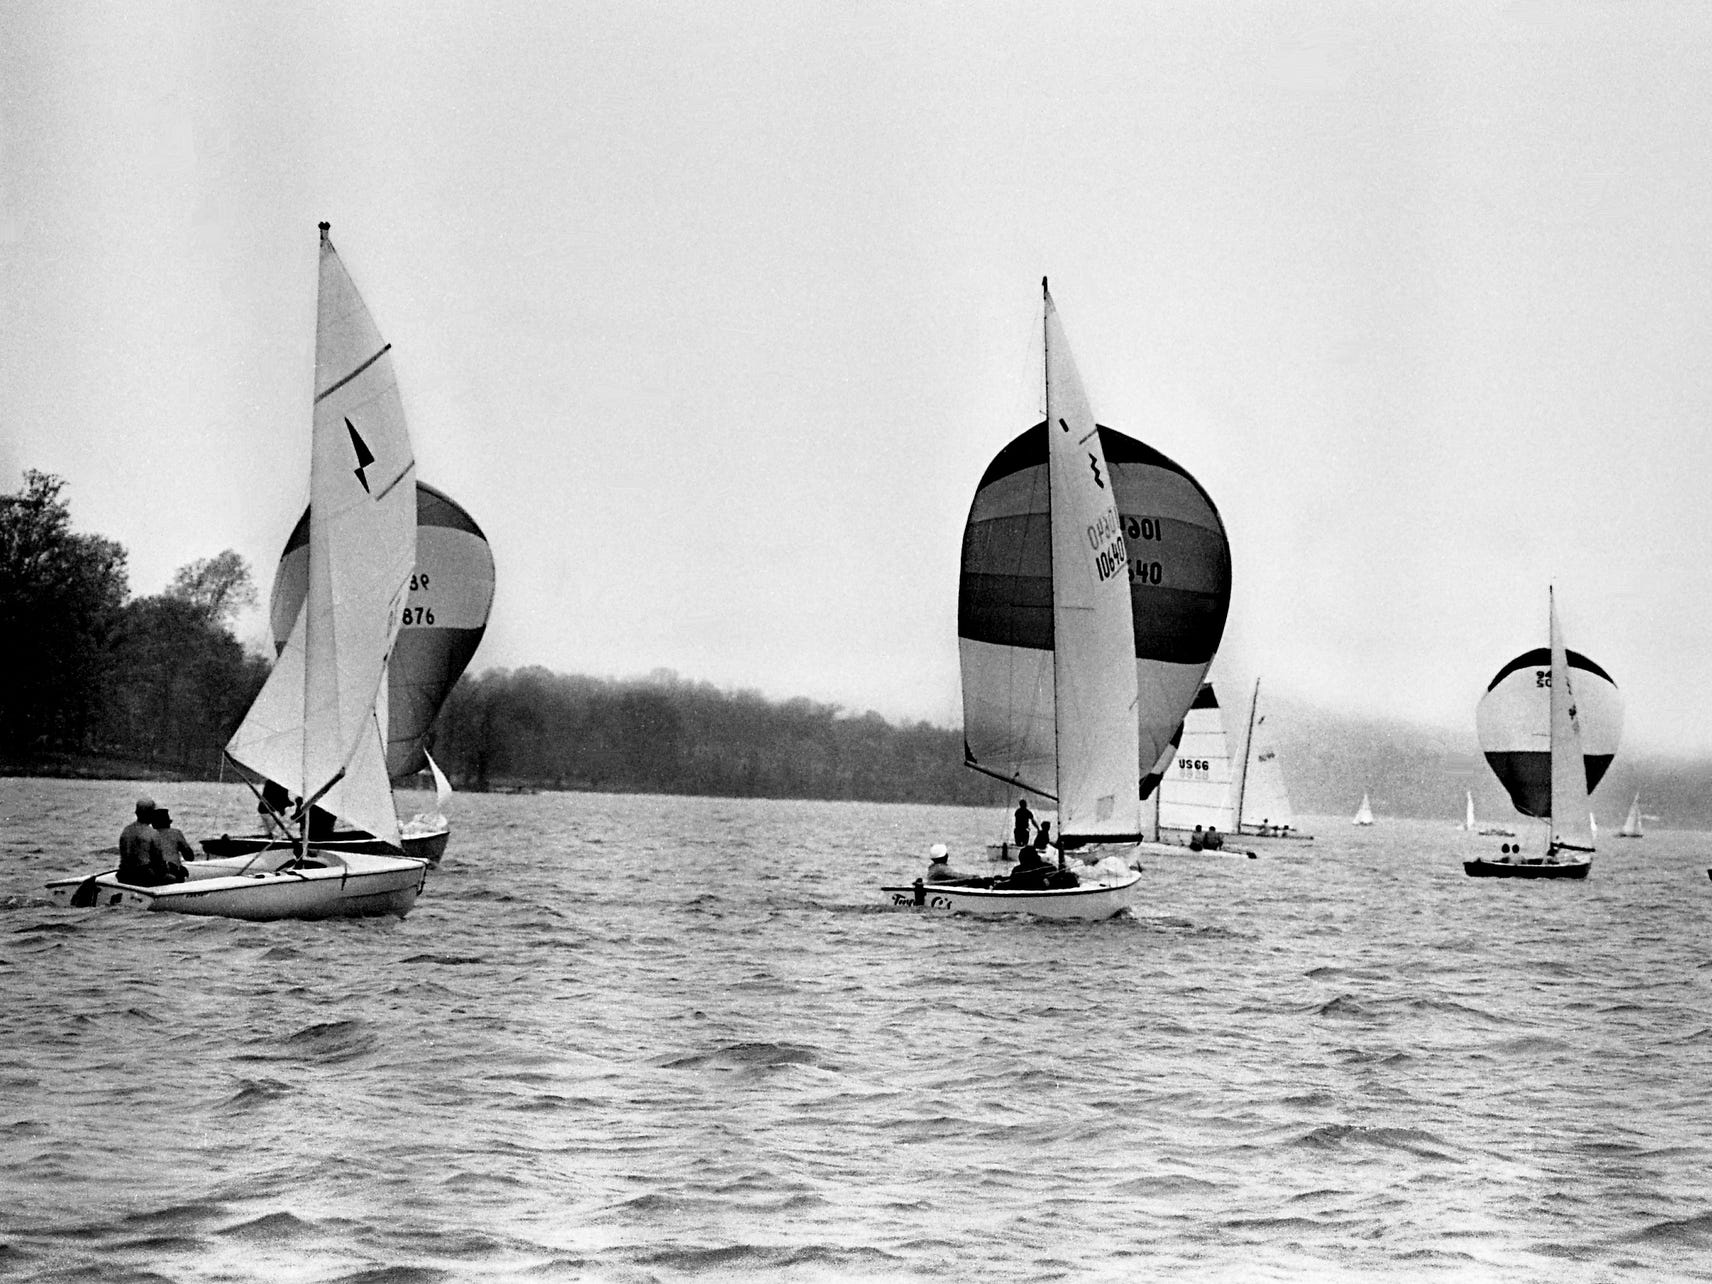 Boats of all shapes and sizes take to Old Hickory Lake on April 20, 1968, signaling the beginning of the 15th annual Tennessean Regatta.